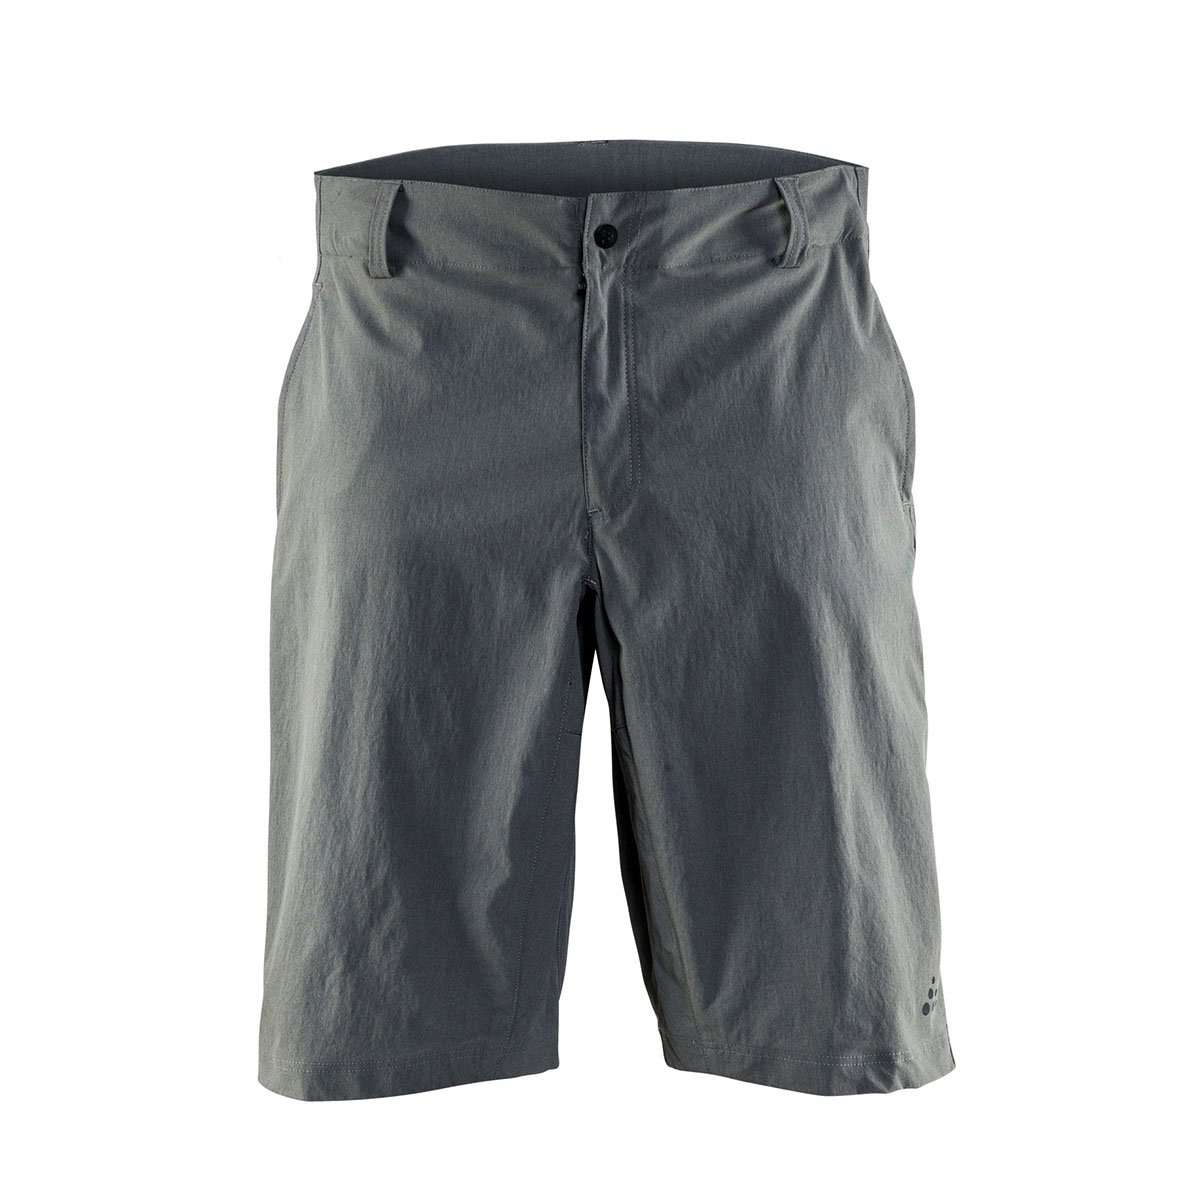 Craft Mens Ride Commuter Bike and Cycling Reflective Shorts